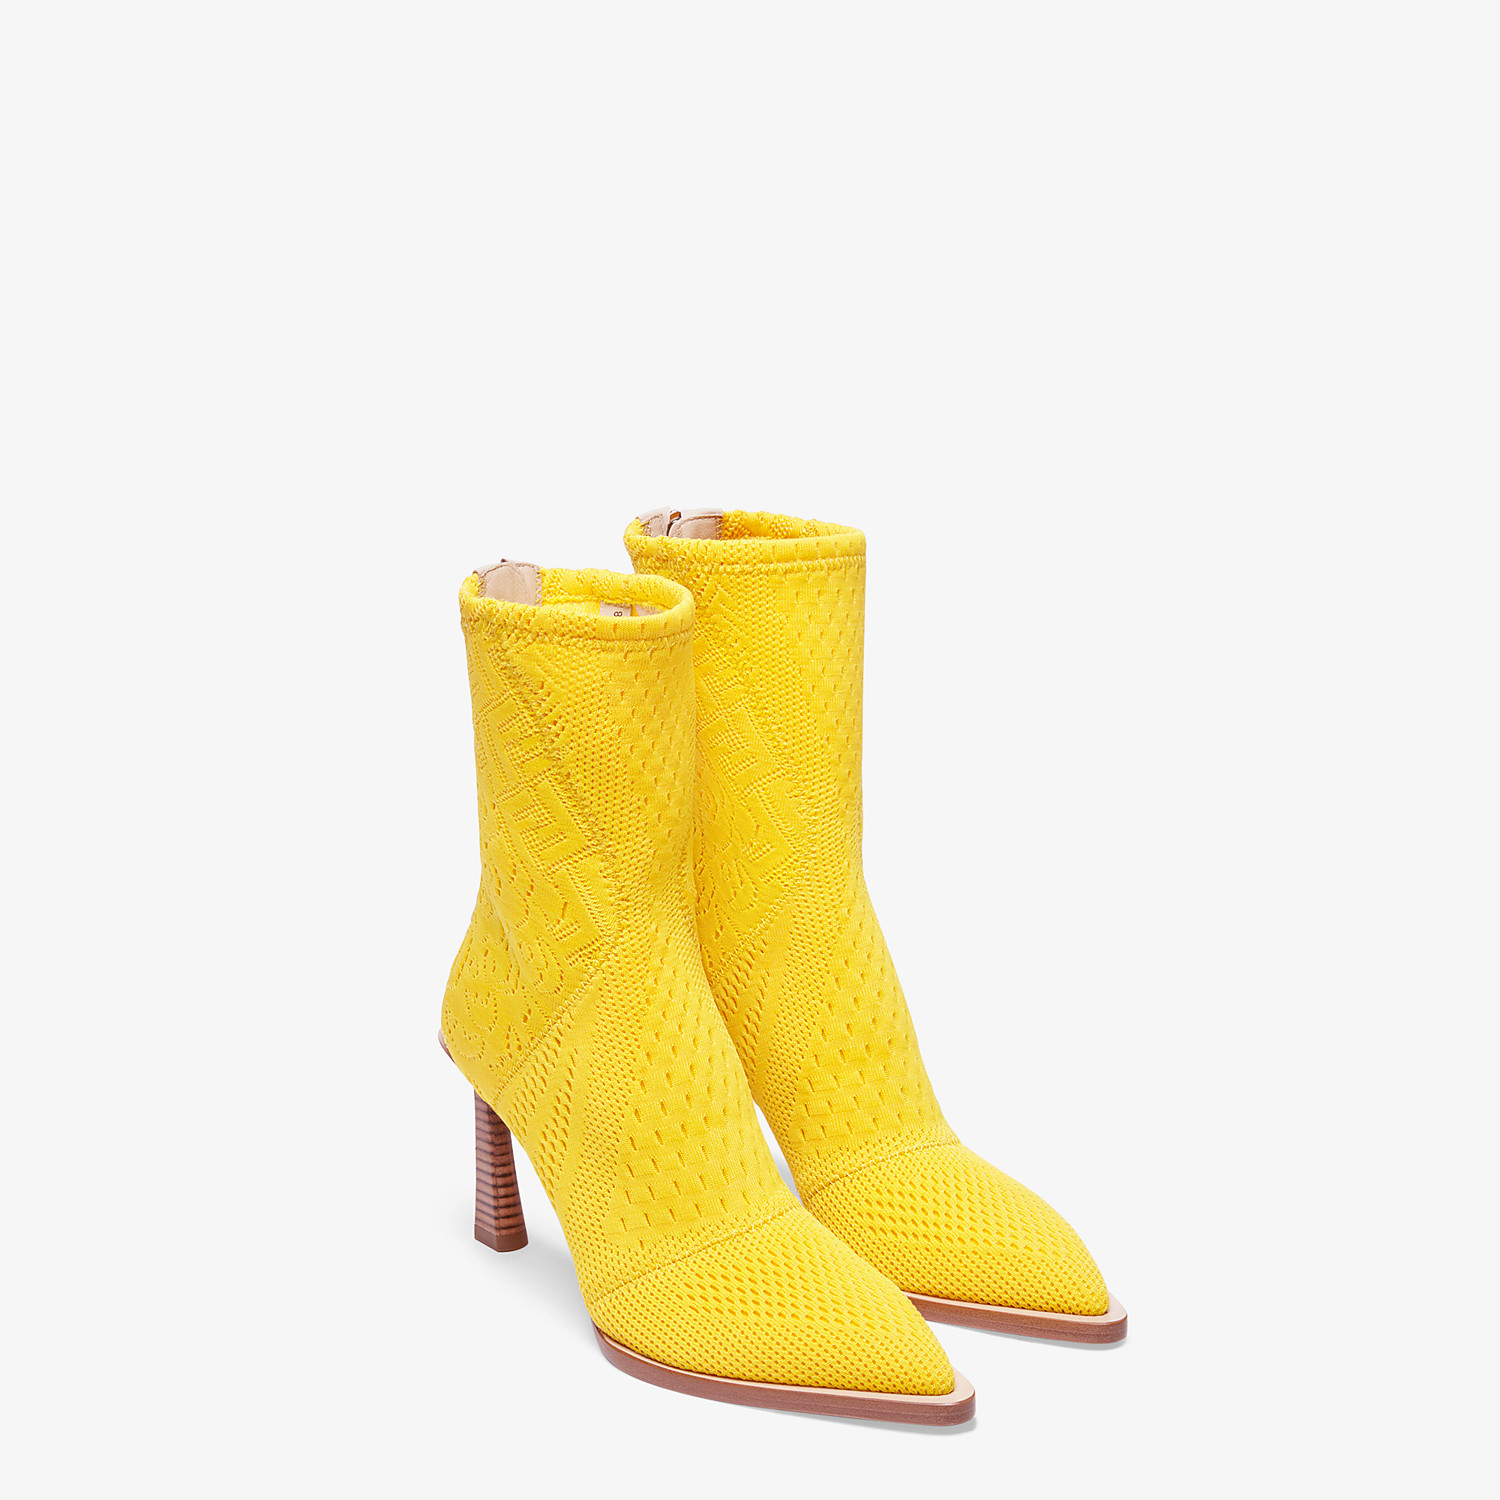 FENDI ANKLE BOOTS - High-tech yellow jacquard ankle boots - view 4 detail